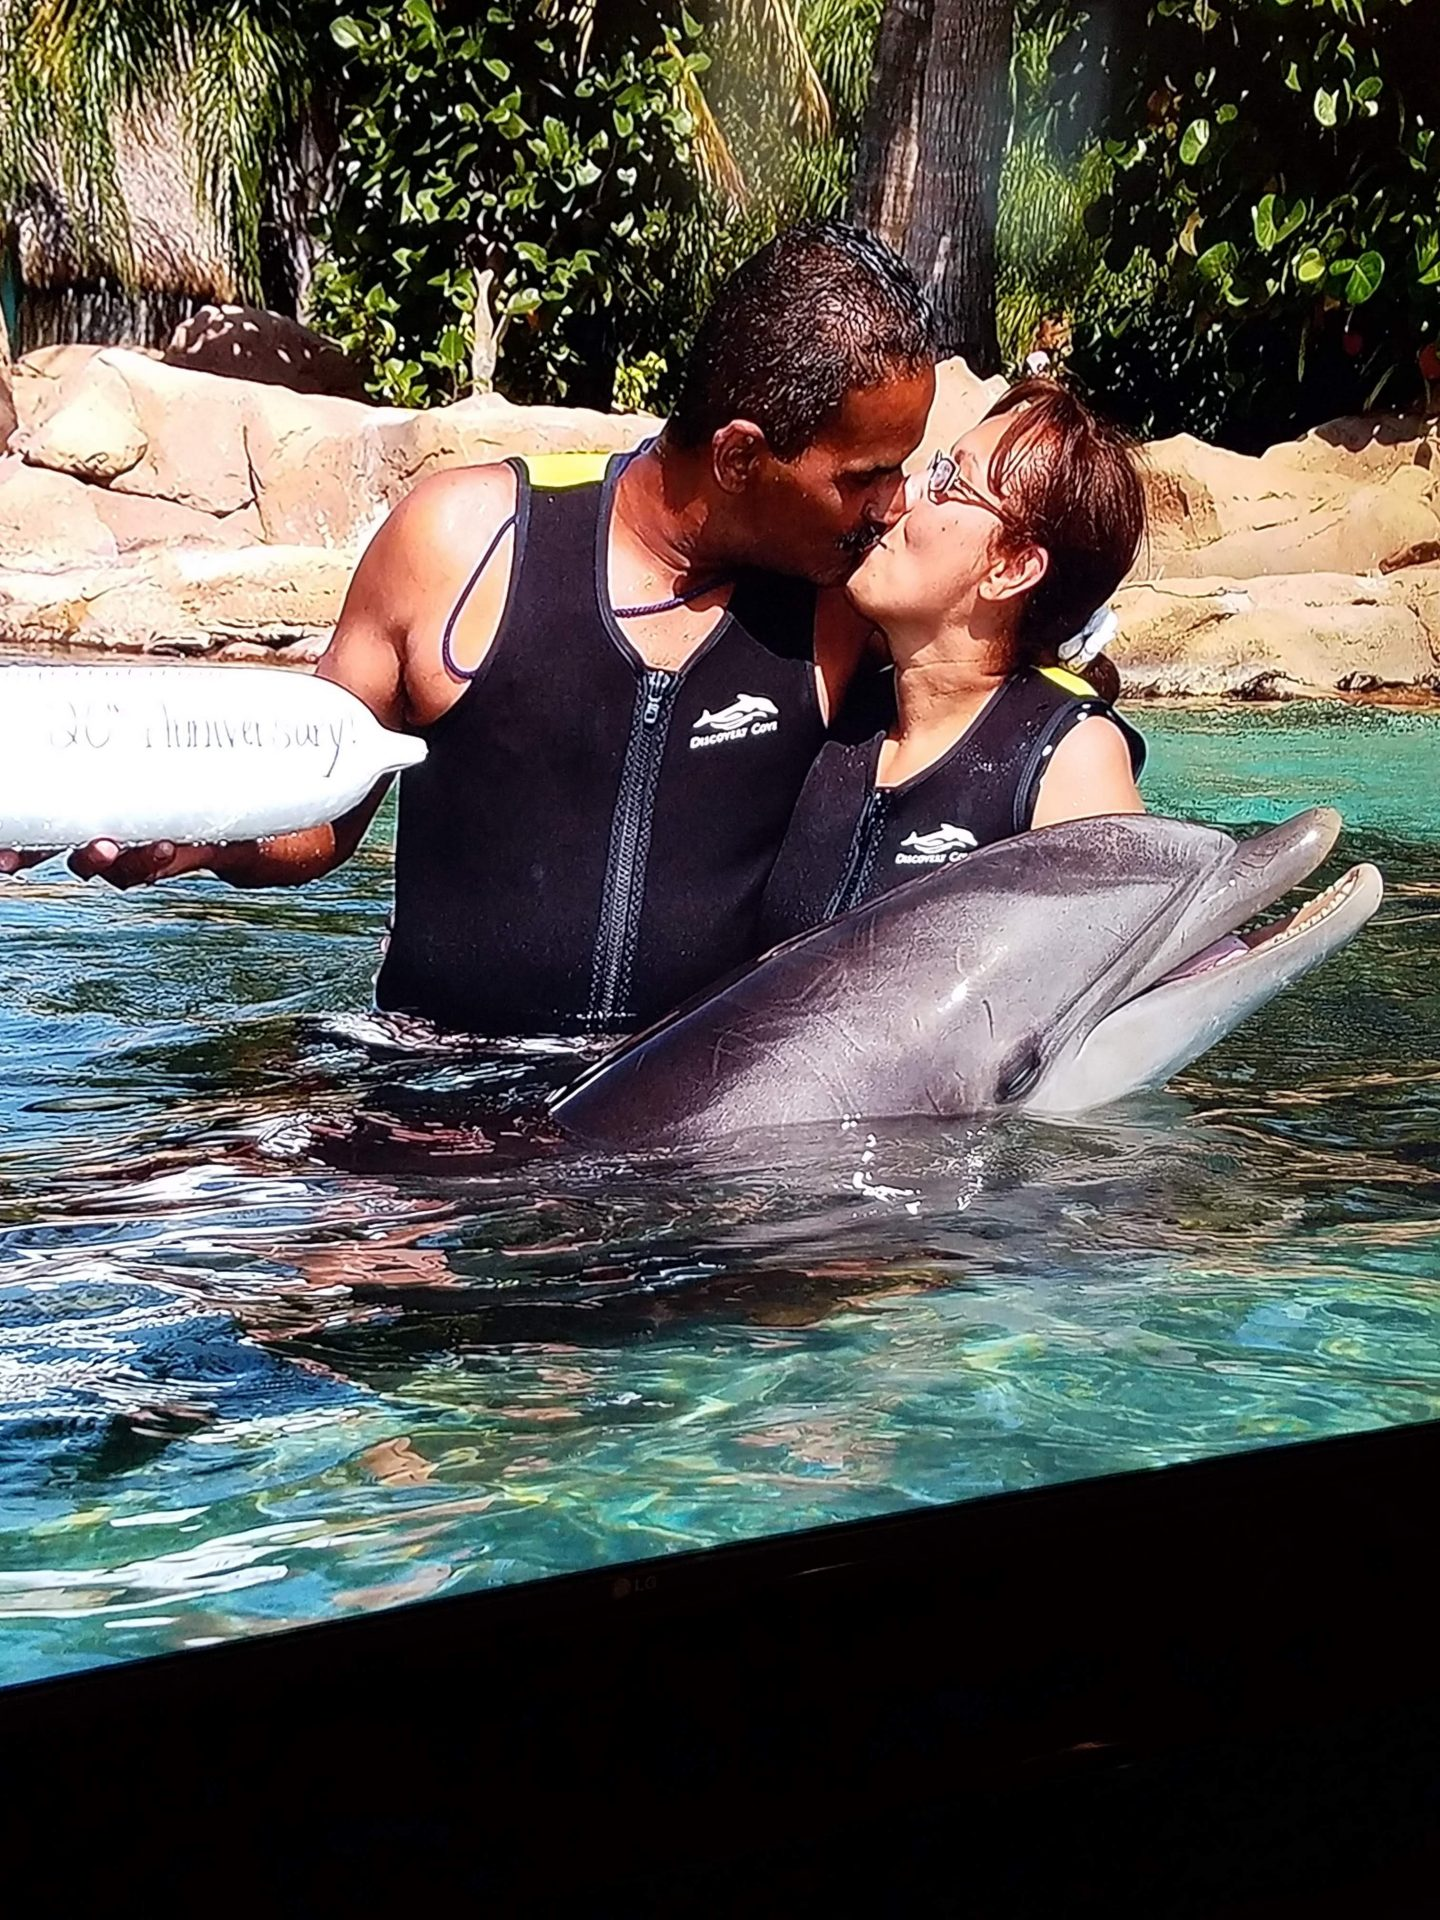 Our 20th Anniversary. We had so much fun at Discovery Cove. I could not swim, you kept holding me up. Love you, God please take care of my husband.